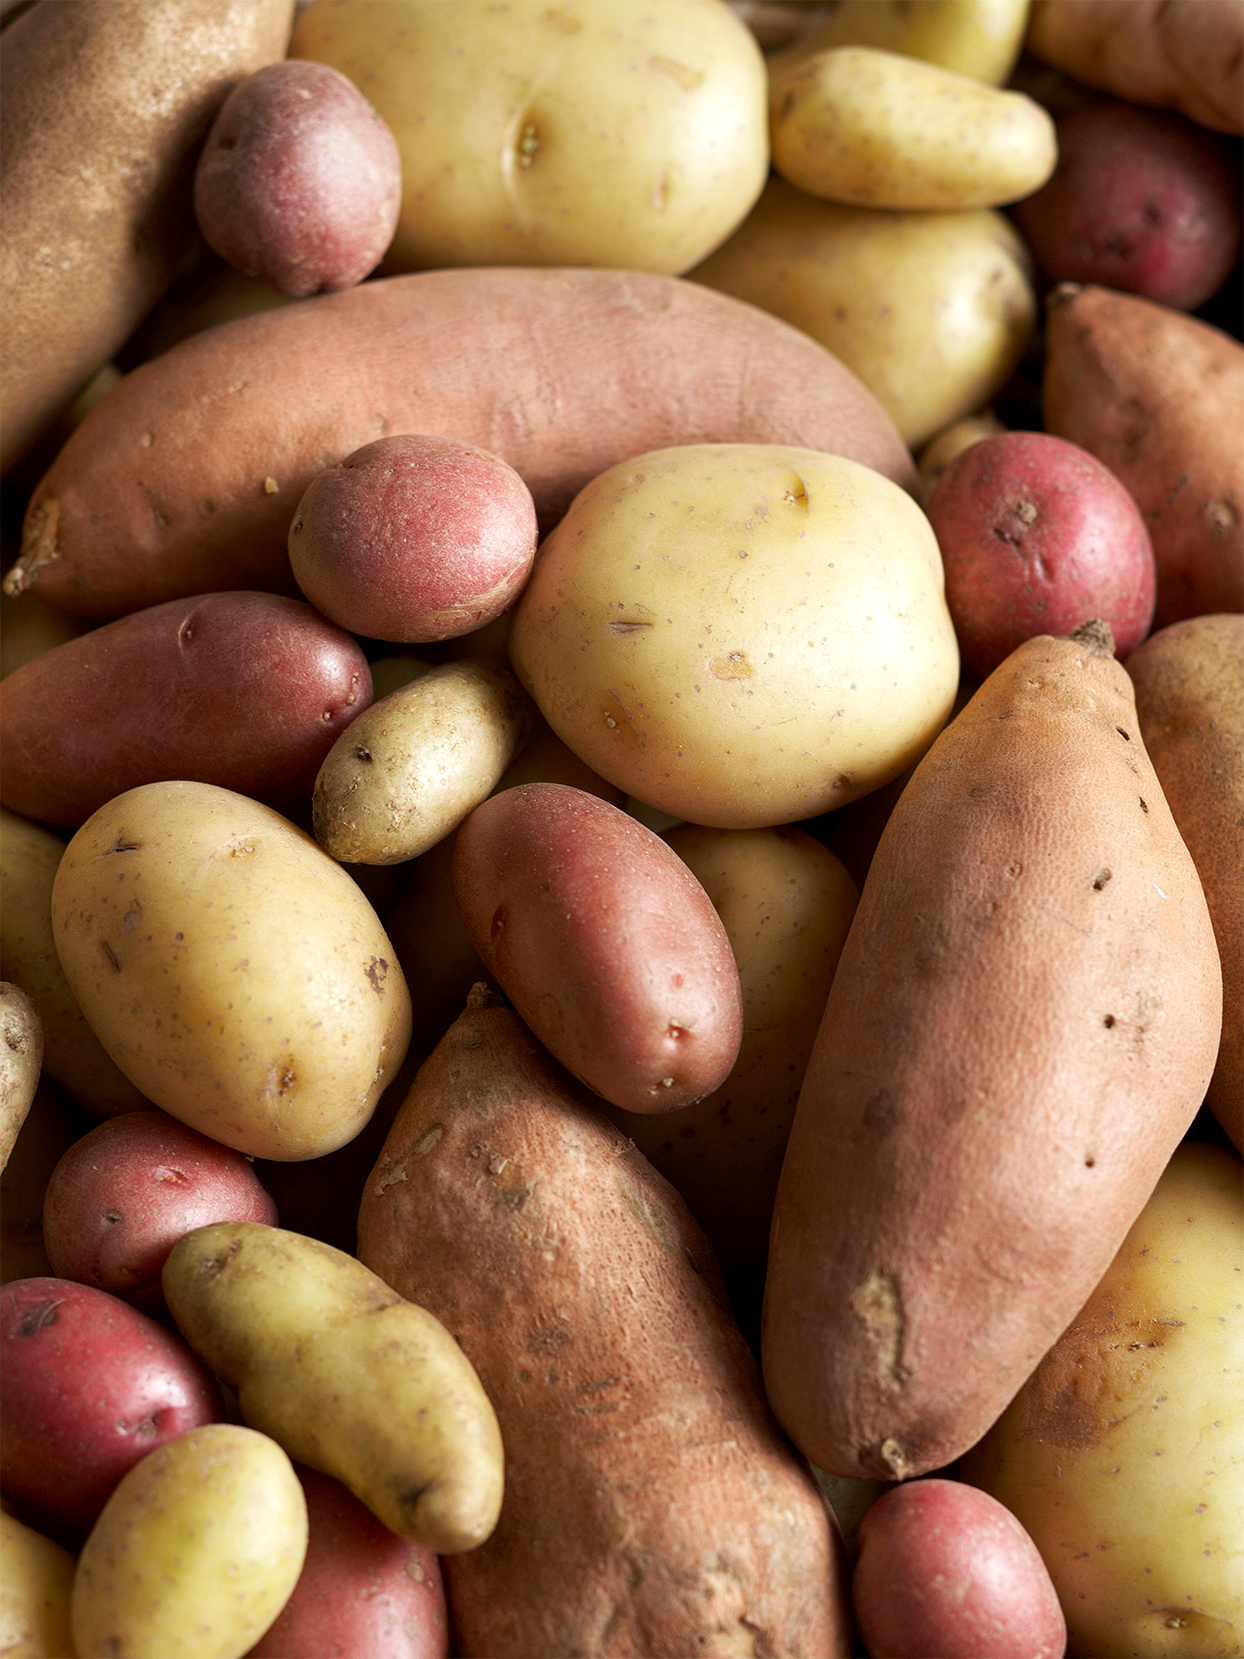 variety of different types of potatoes including Russet, Red and Yukon Gold